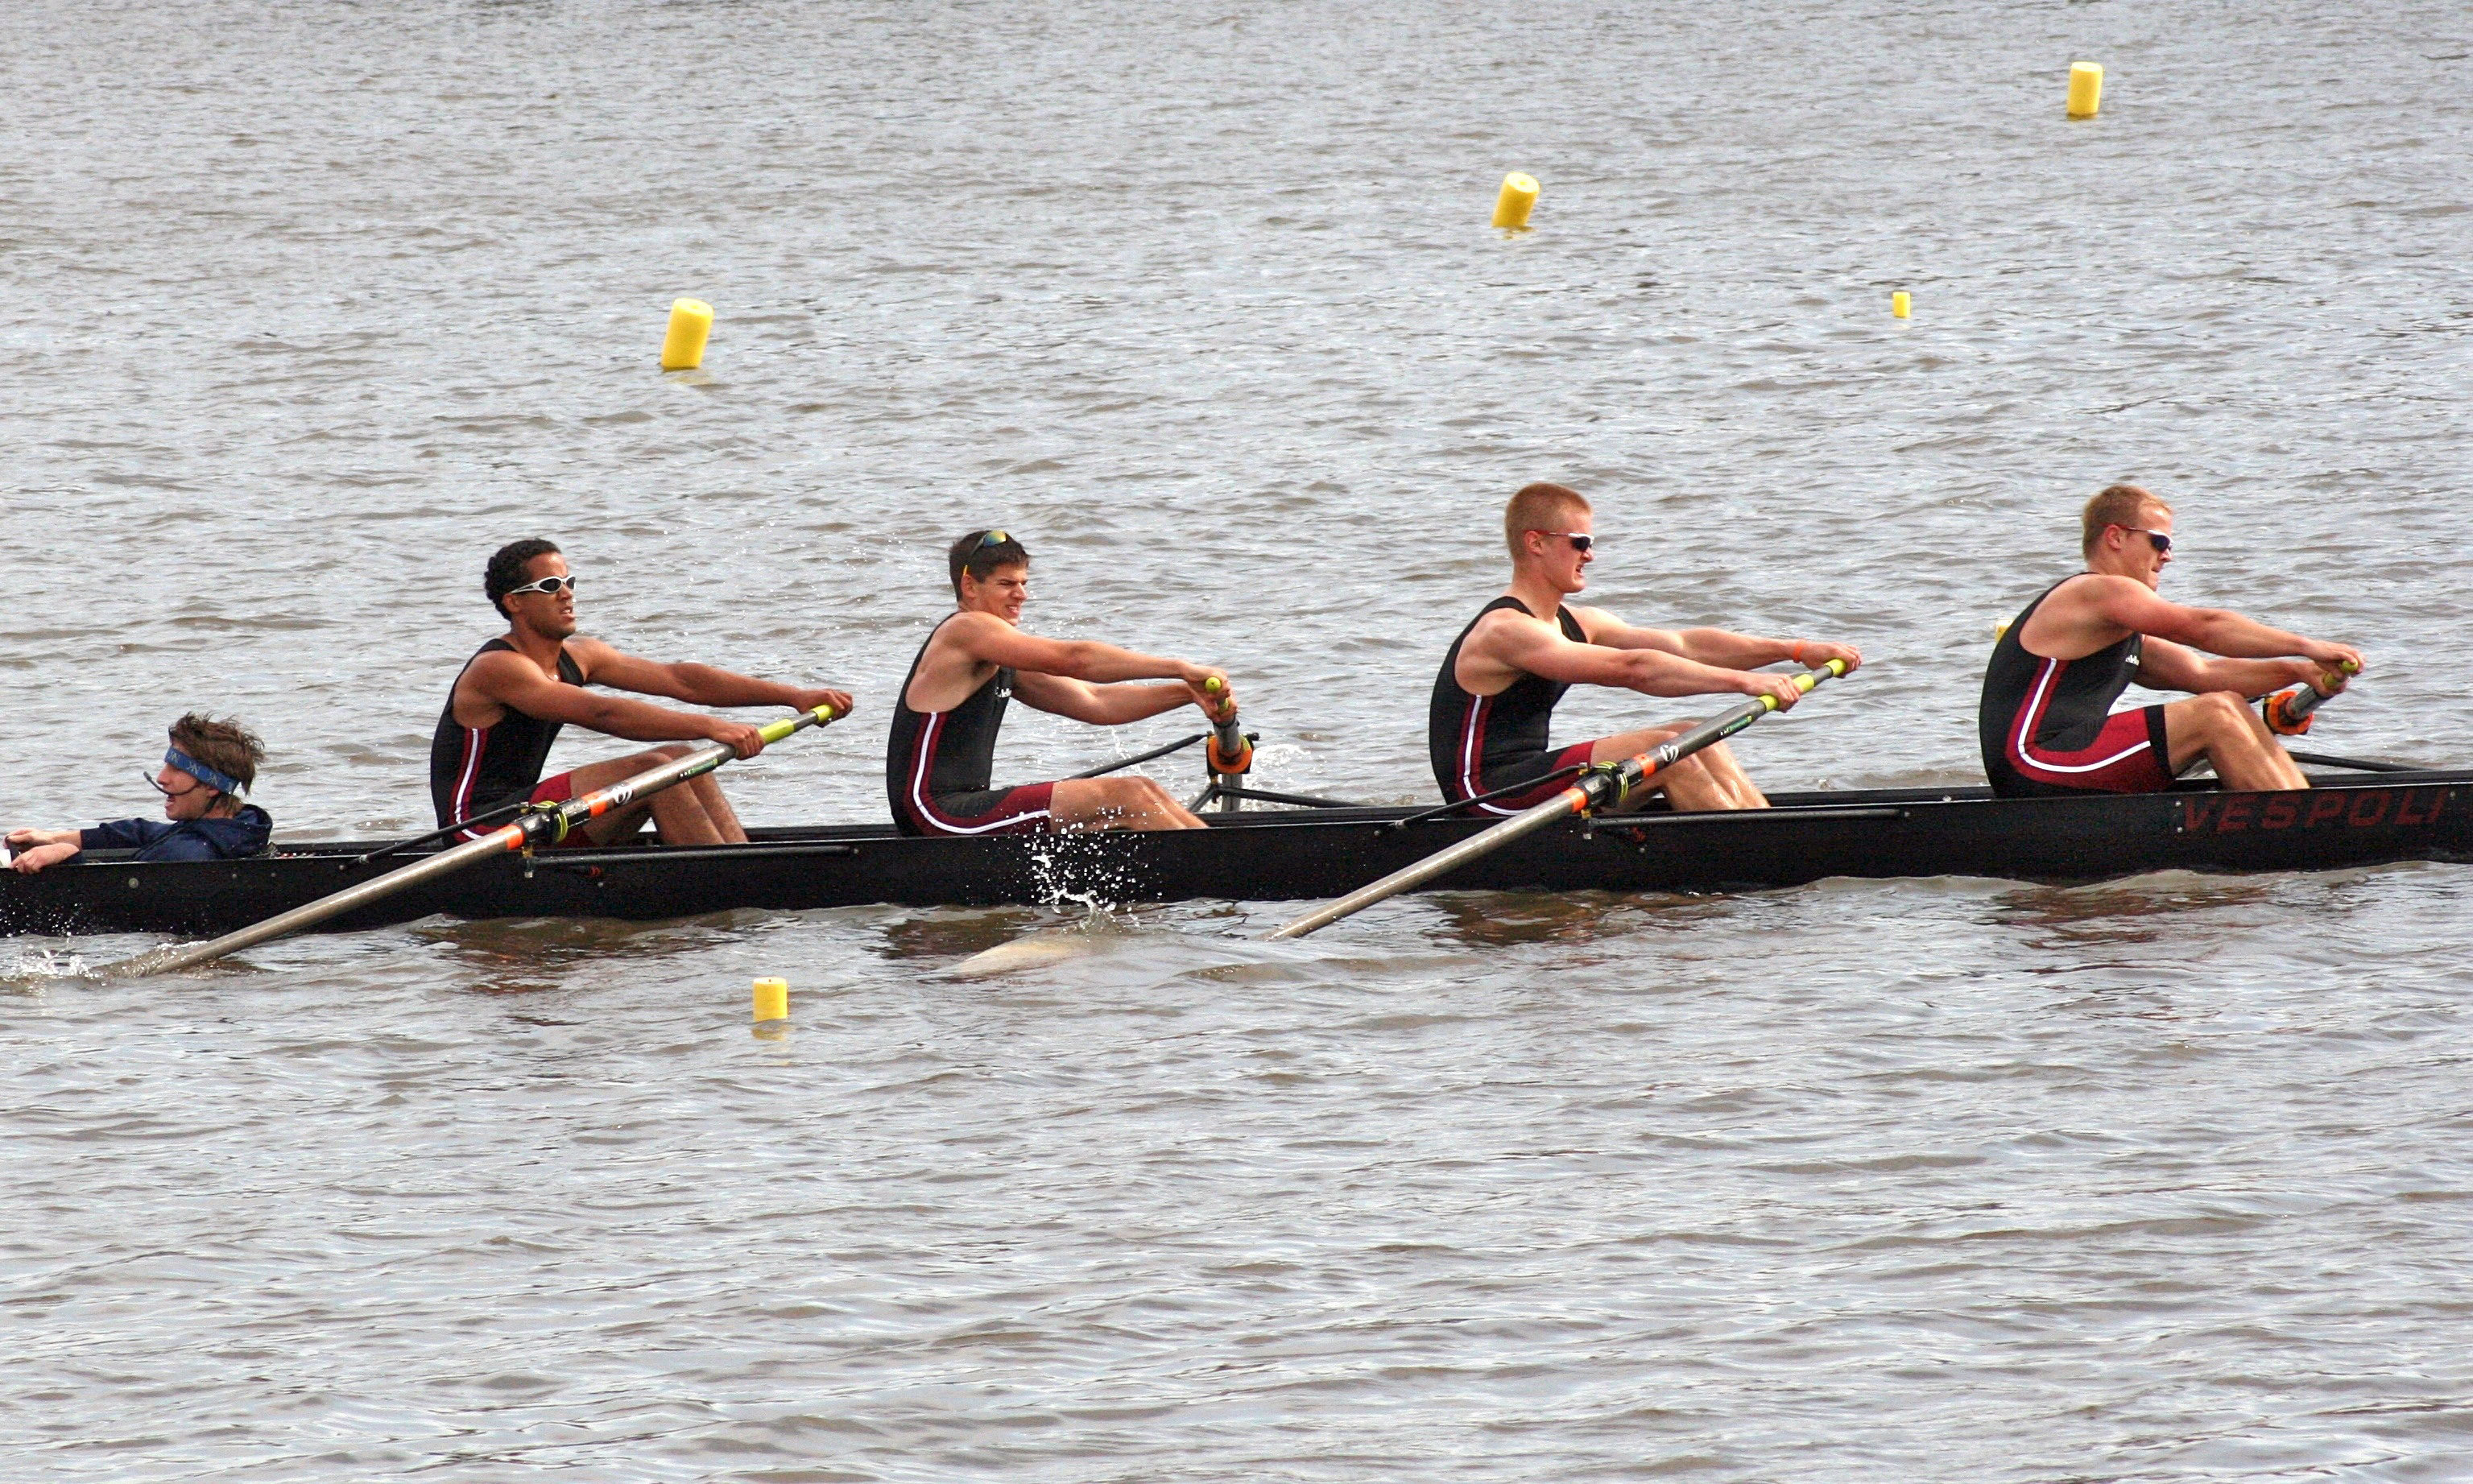 The novice men's 4+ rows along the Cooper River. (credit: Courtesy of Elizabeth Mahaffa)